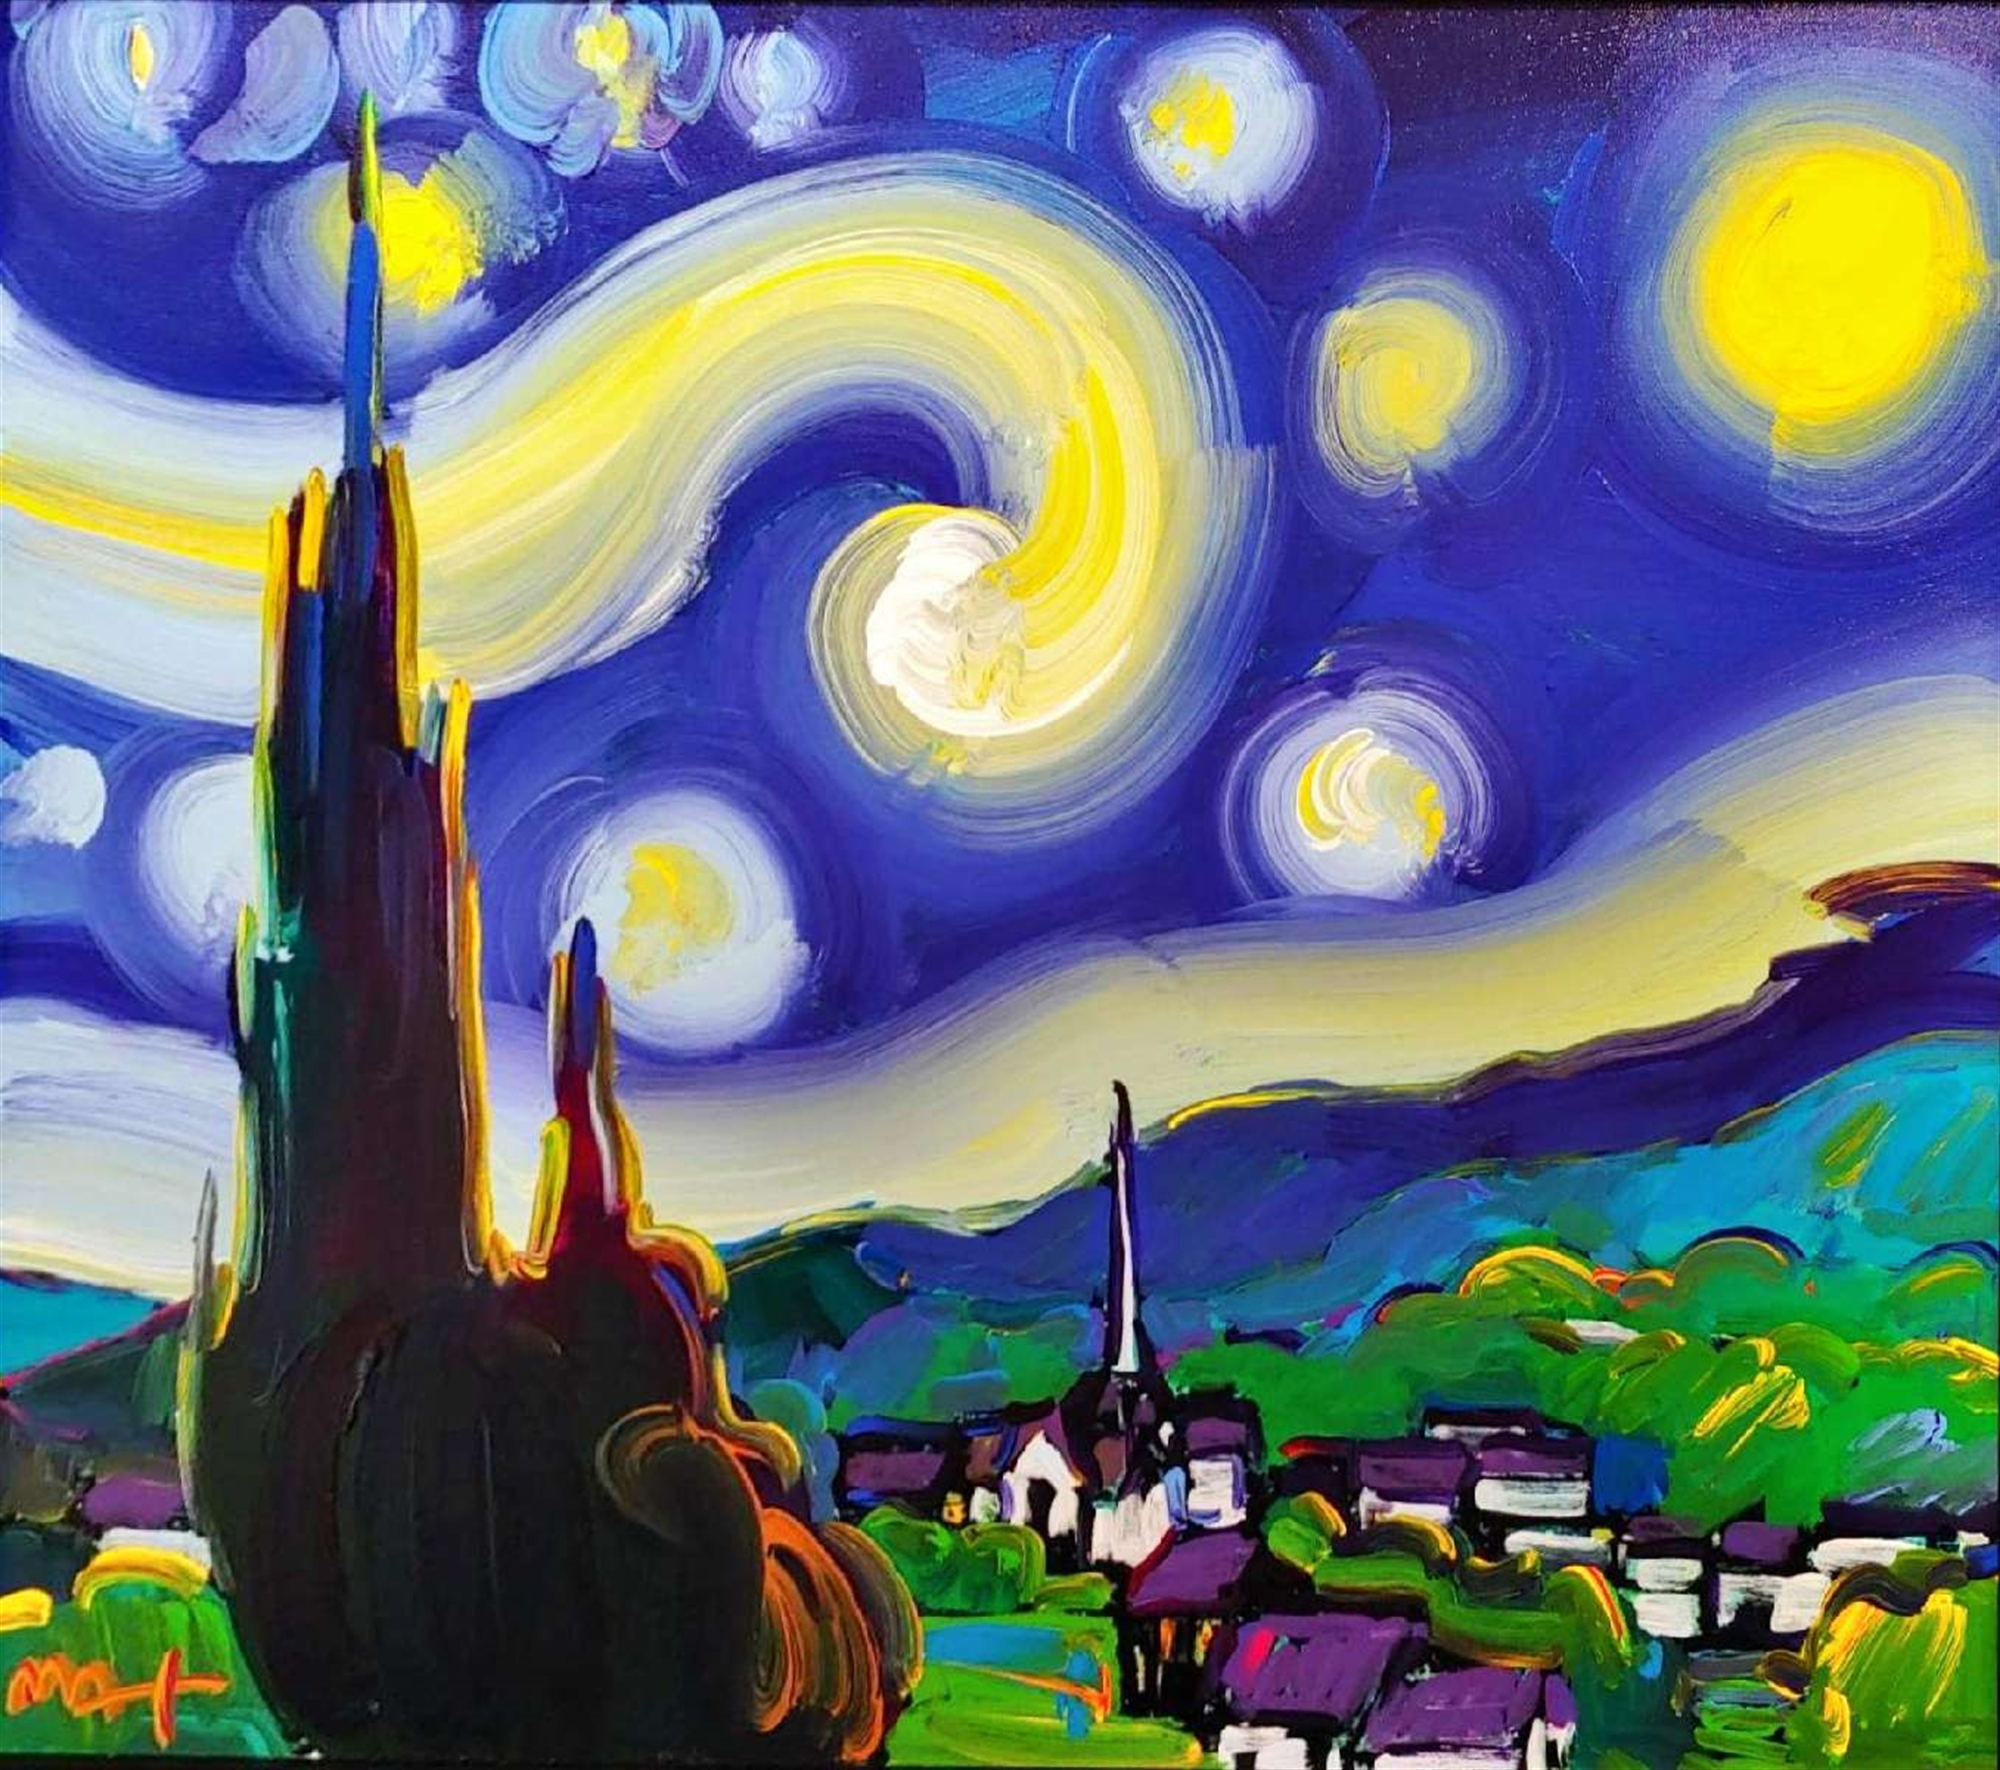 STARRY STARRY NIGHT by Peter Max